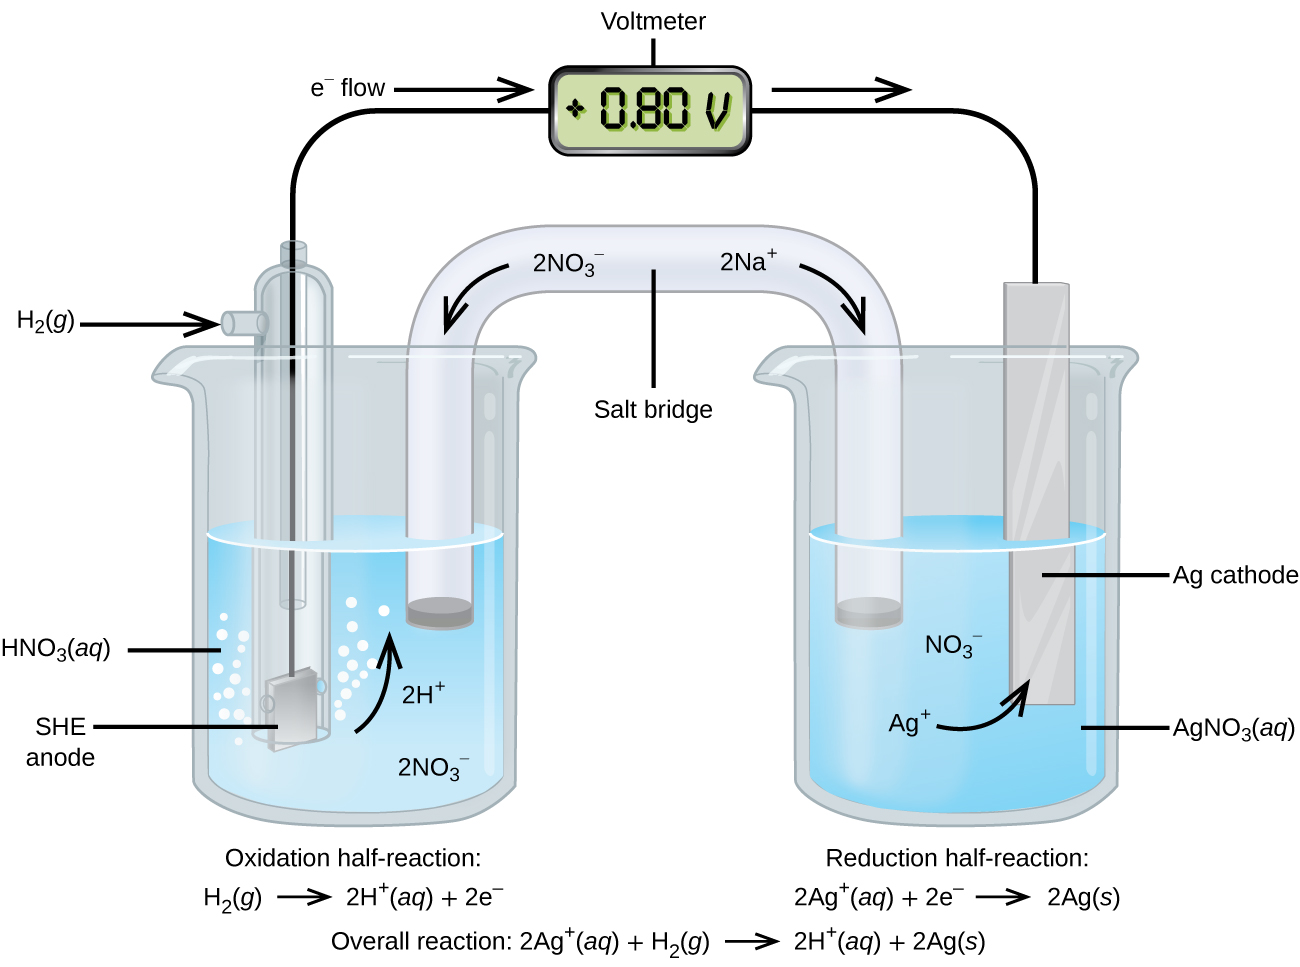 Standard reduction potentials chemistry a galvanic cell can be used to determine the standard reduction potential of ag the she on the left is the anode and assigned a standard reduction ccuart Image collections